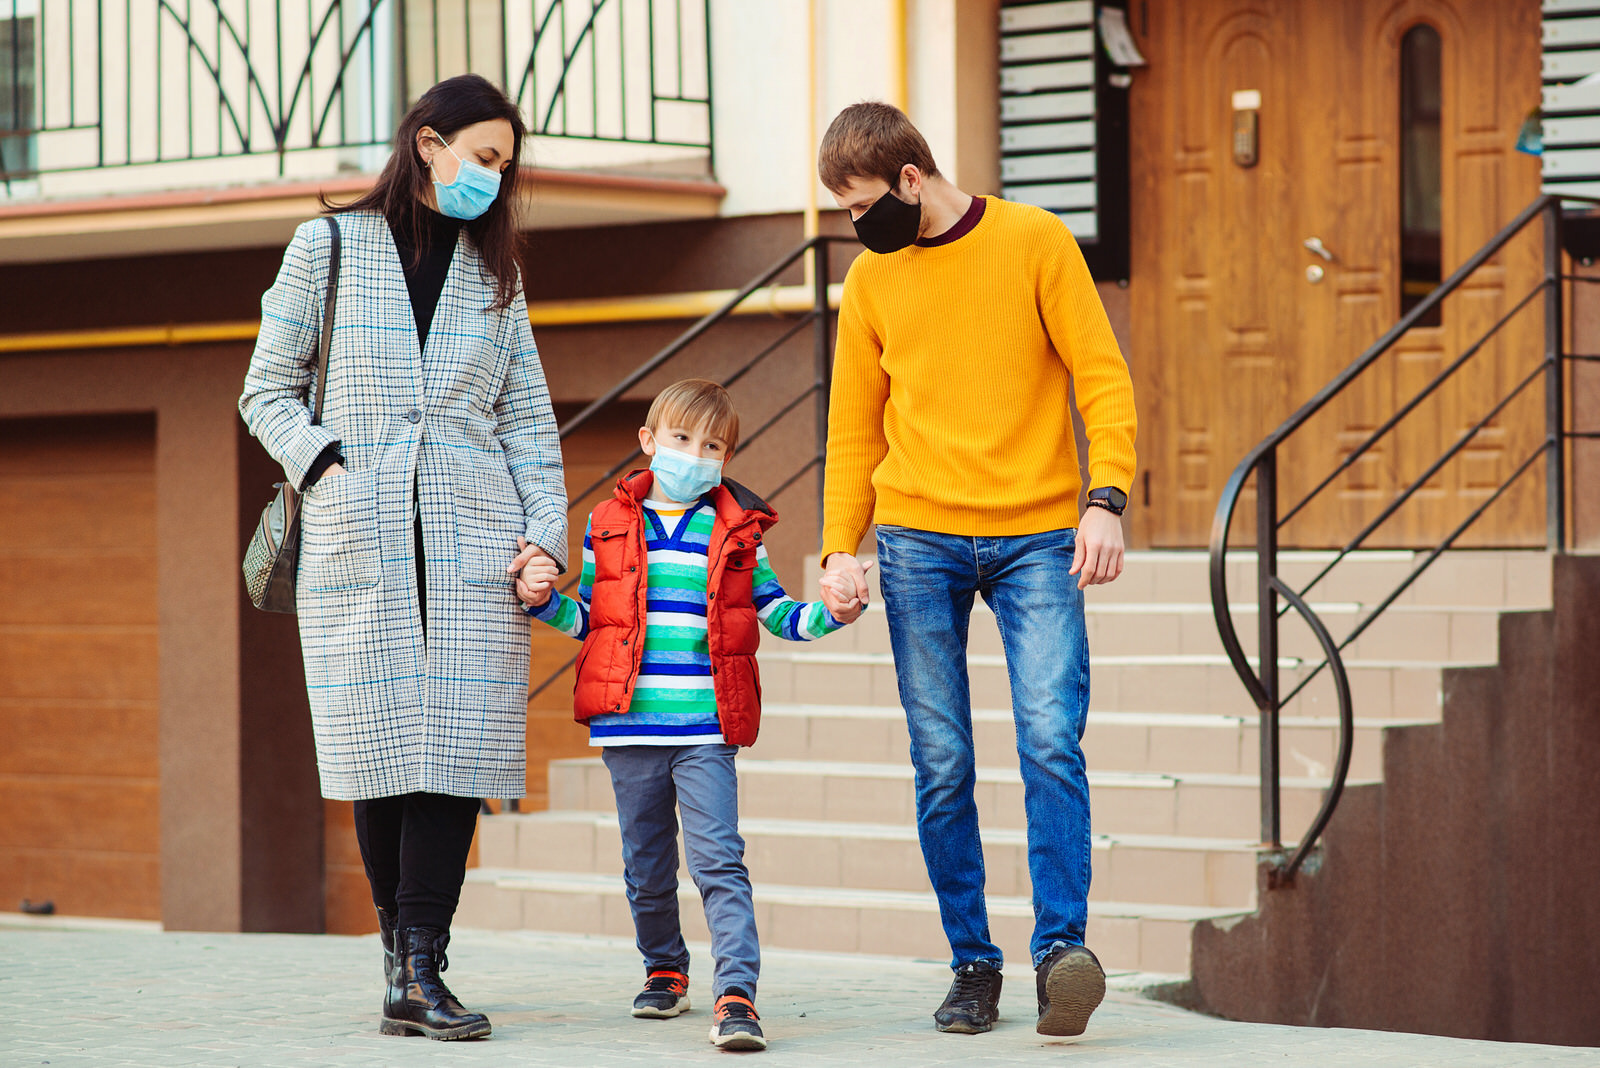 Family goes for a walk while wearing masks